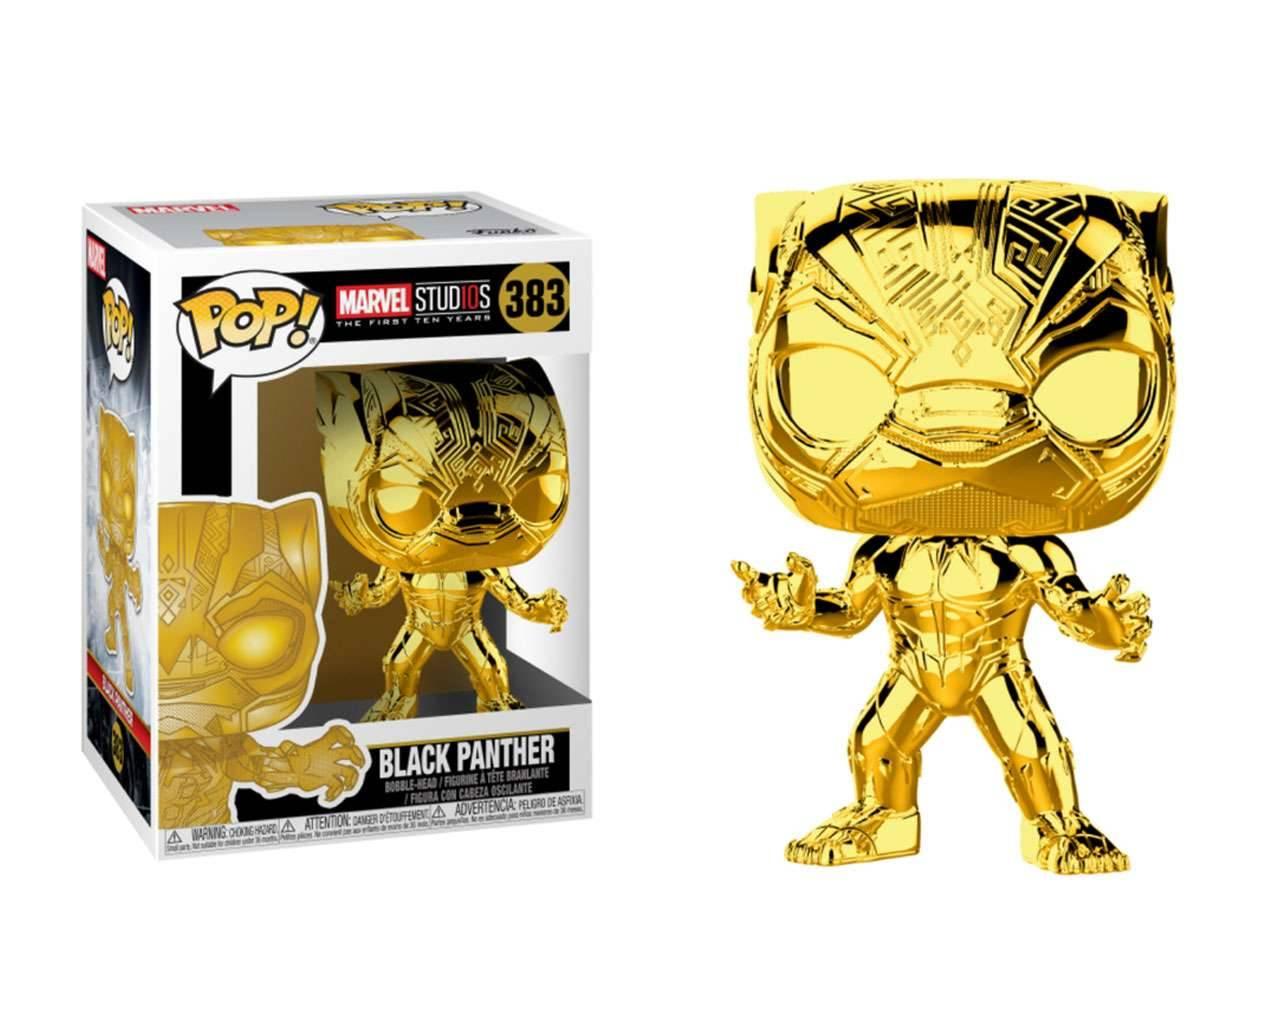 Black Panther (Chrome) Pop! Vinyl